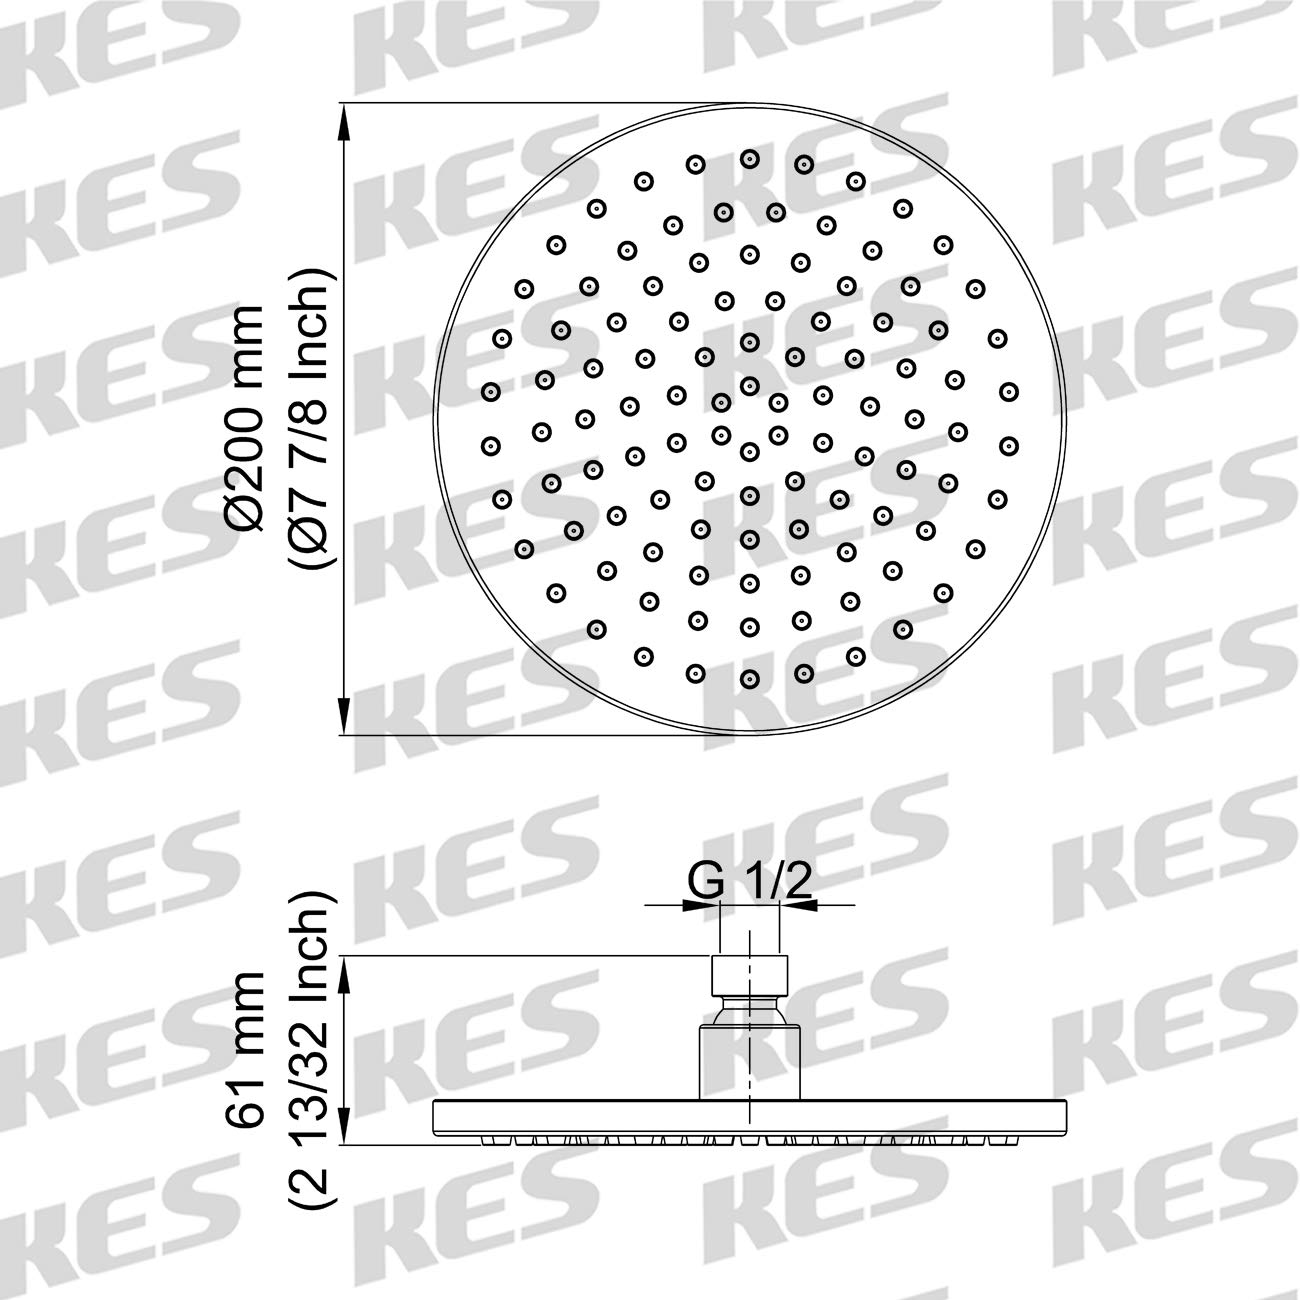 J203S8-BK Black KES All SUS304 Stainless Steel Rain Shower Head 8-Inch with Swivel Ball Joint Rainfall High Flow Shower System Contemporary Style